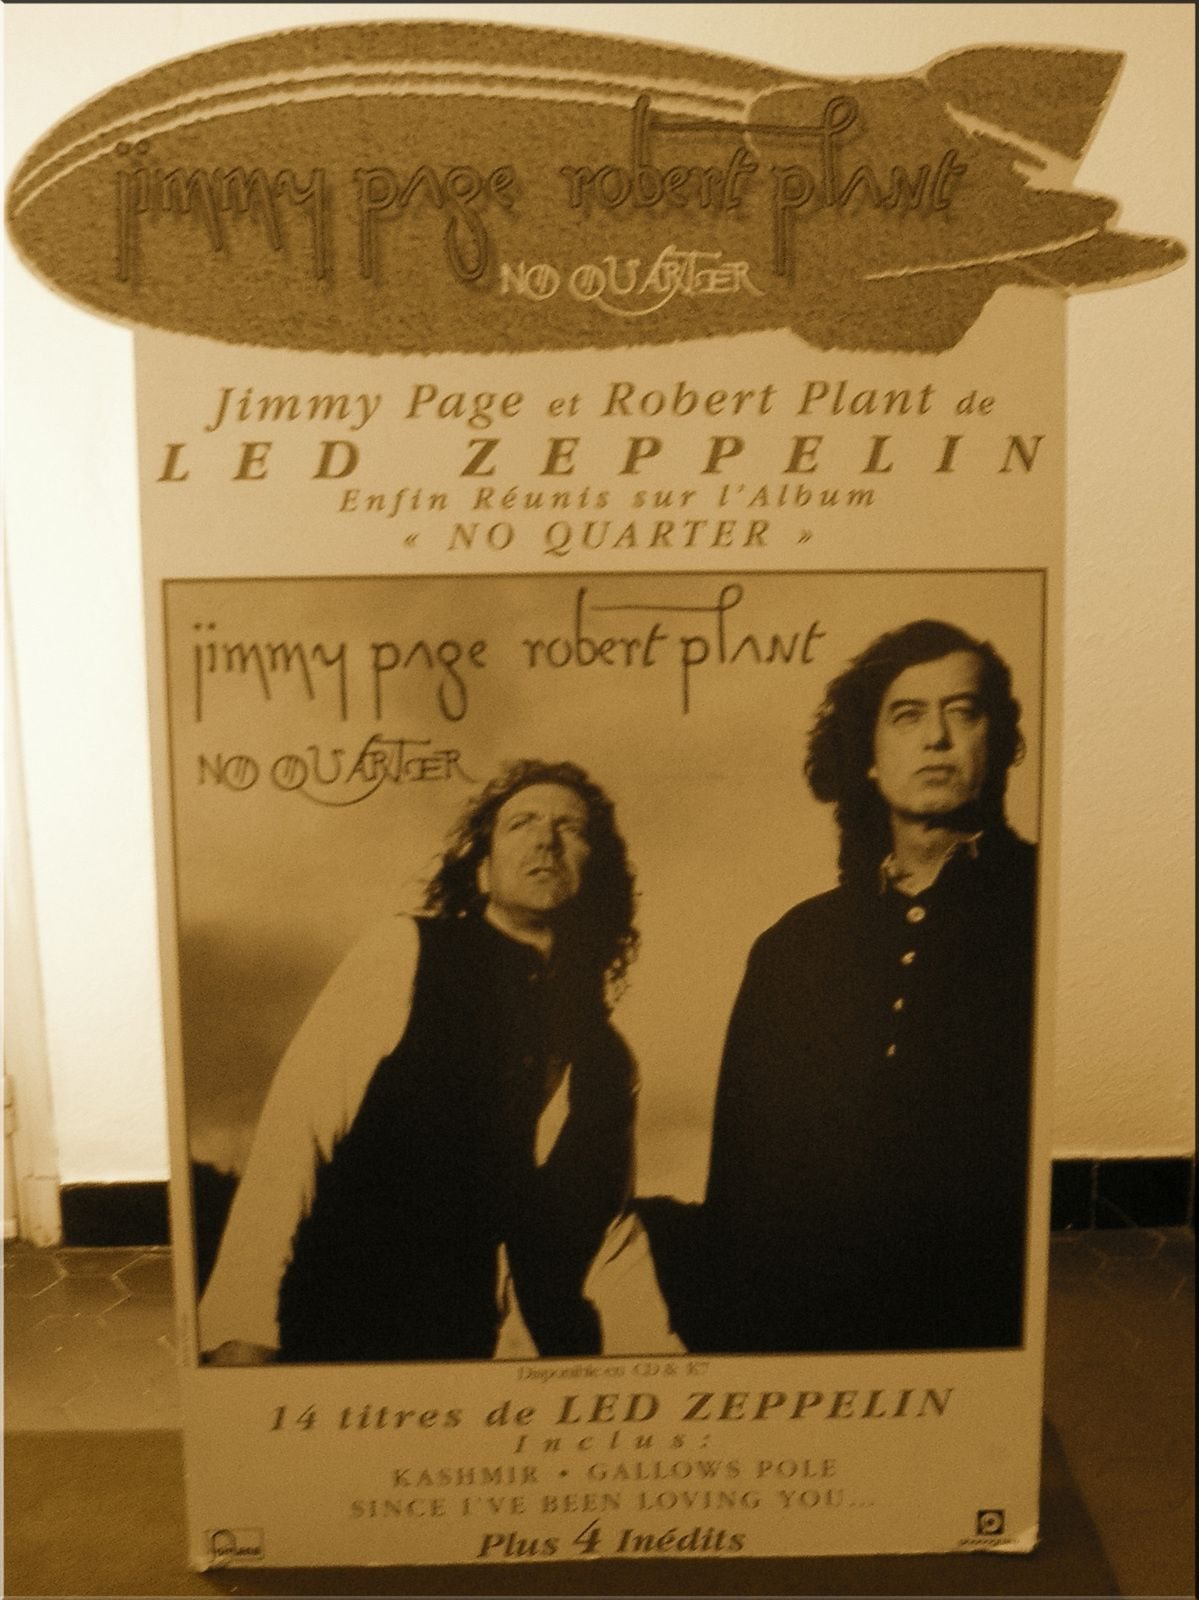 Page & Plant Live At The Gorge Amphitheatre 27 May 1995